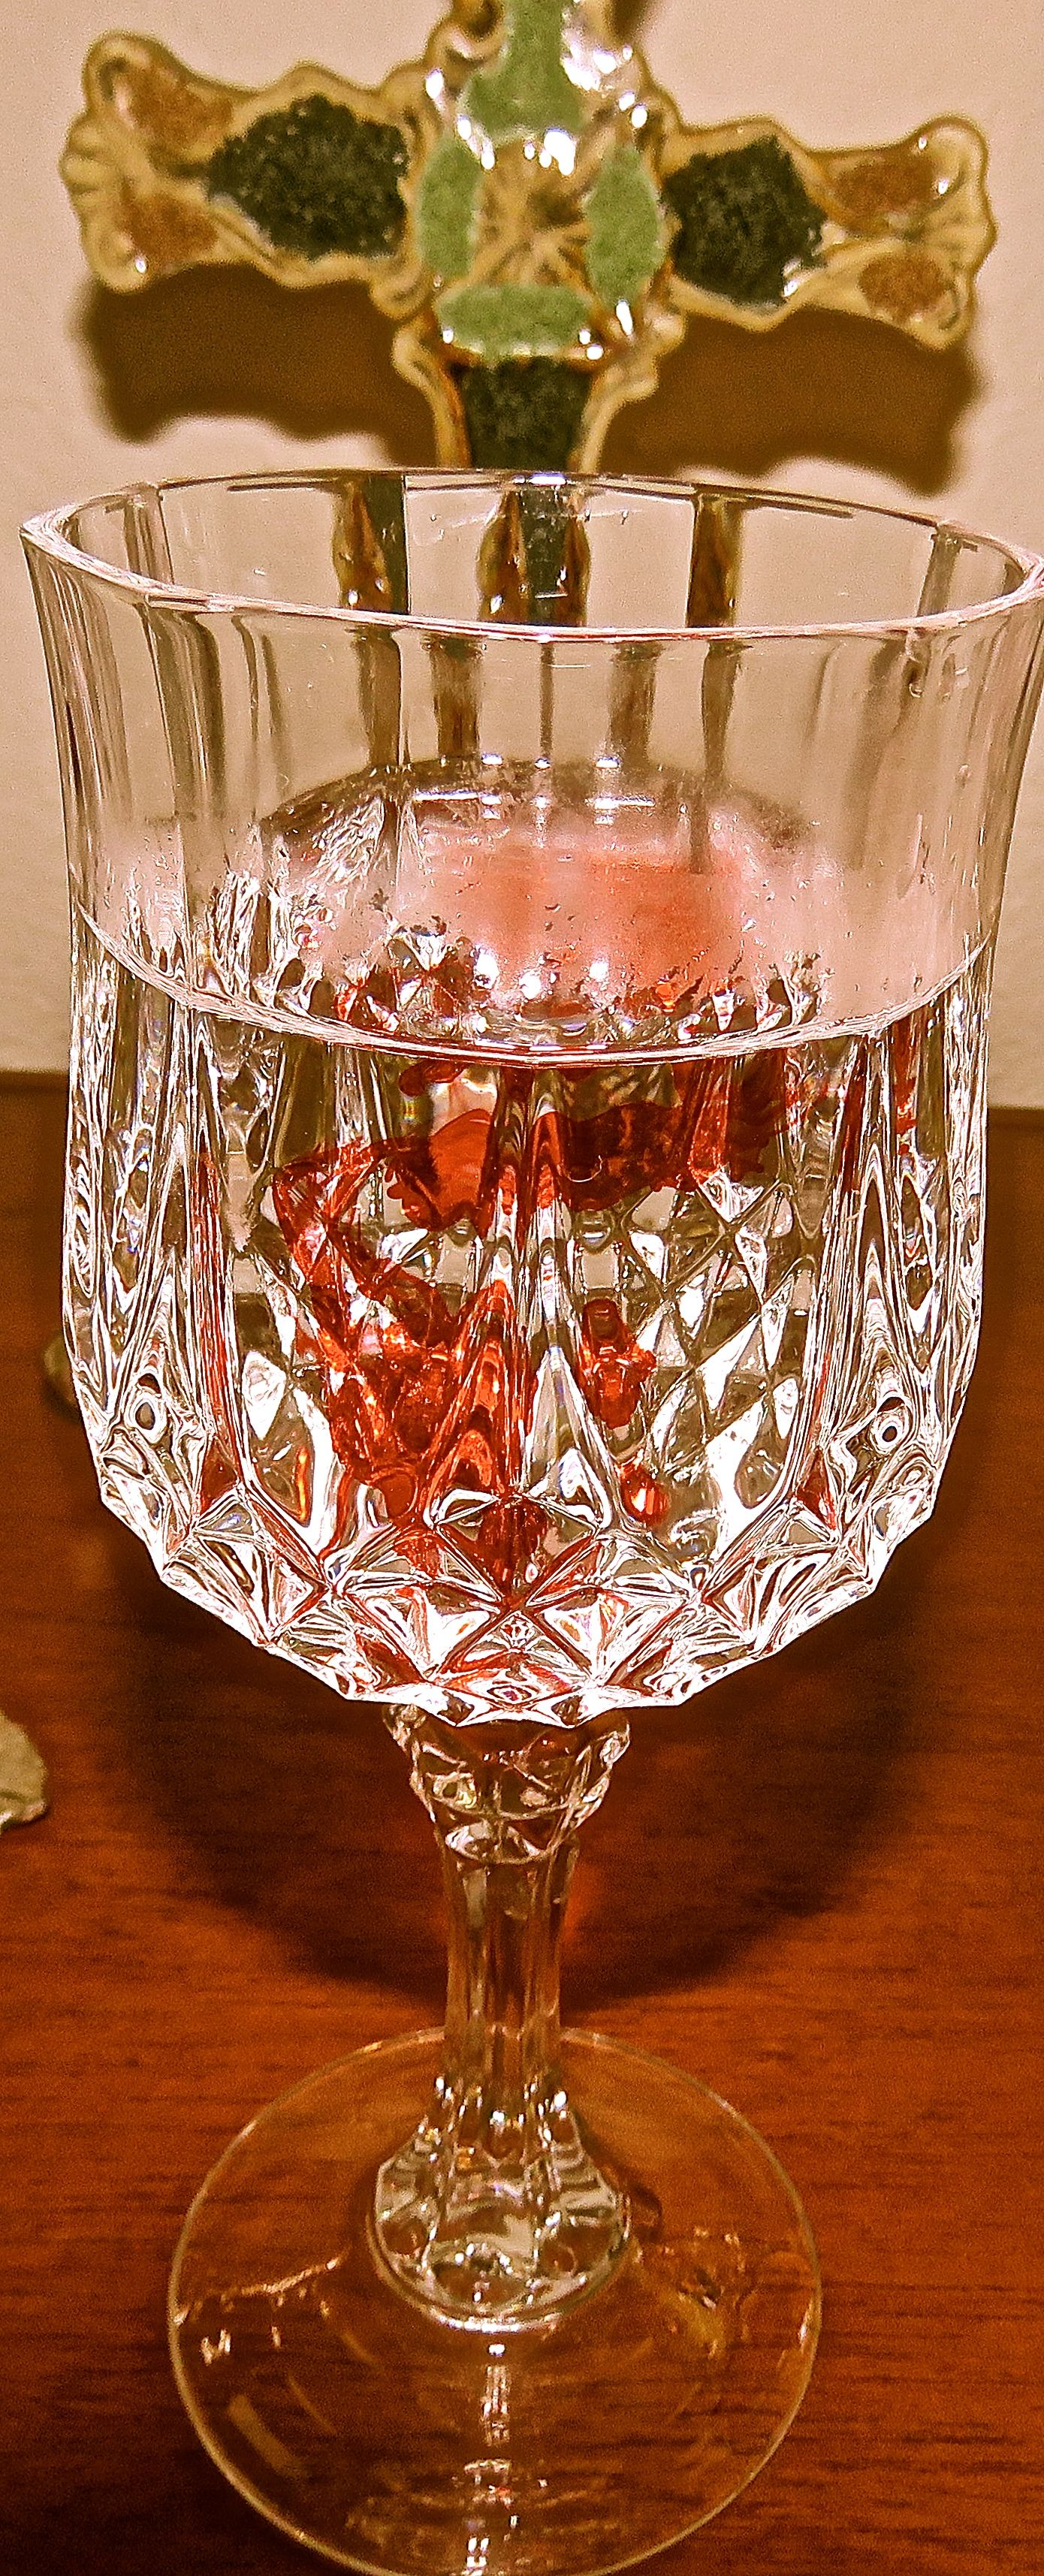 Water Color Glass Interesting Photography